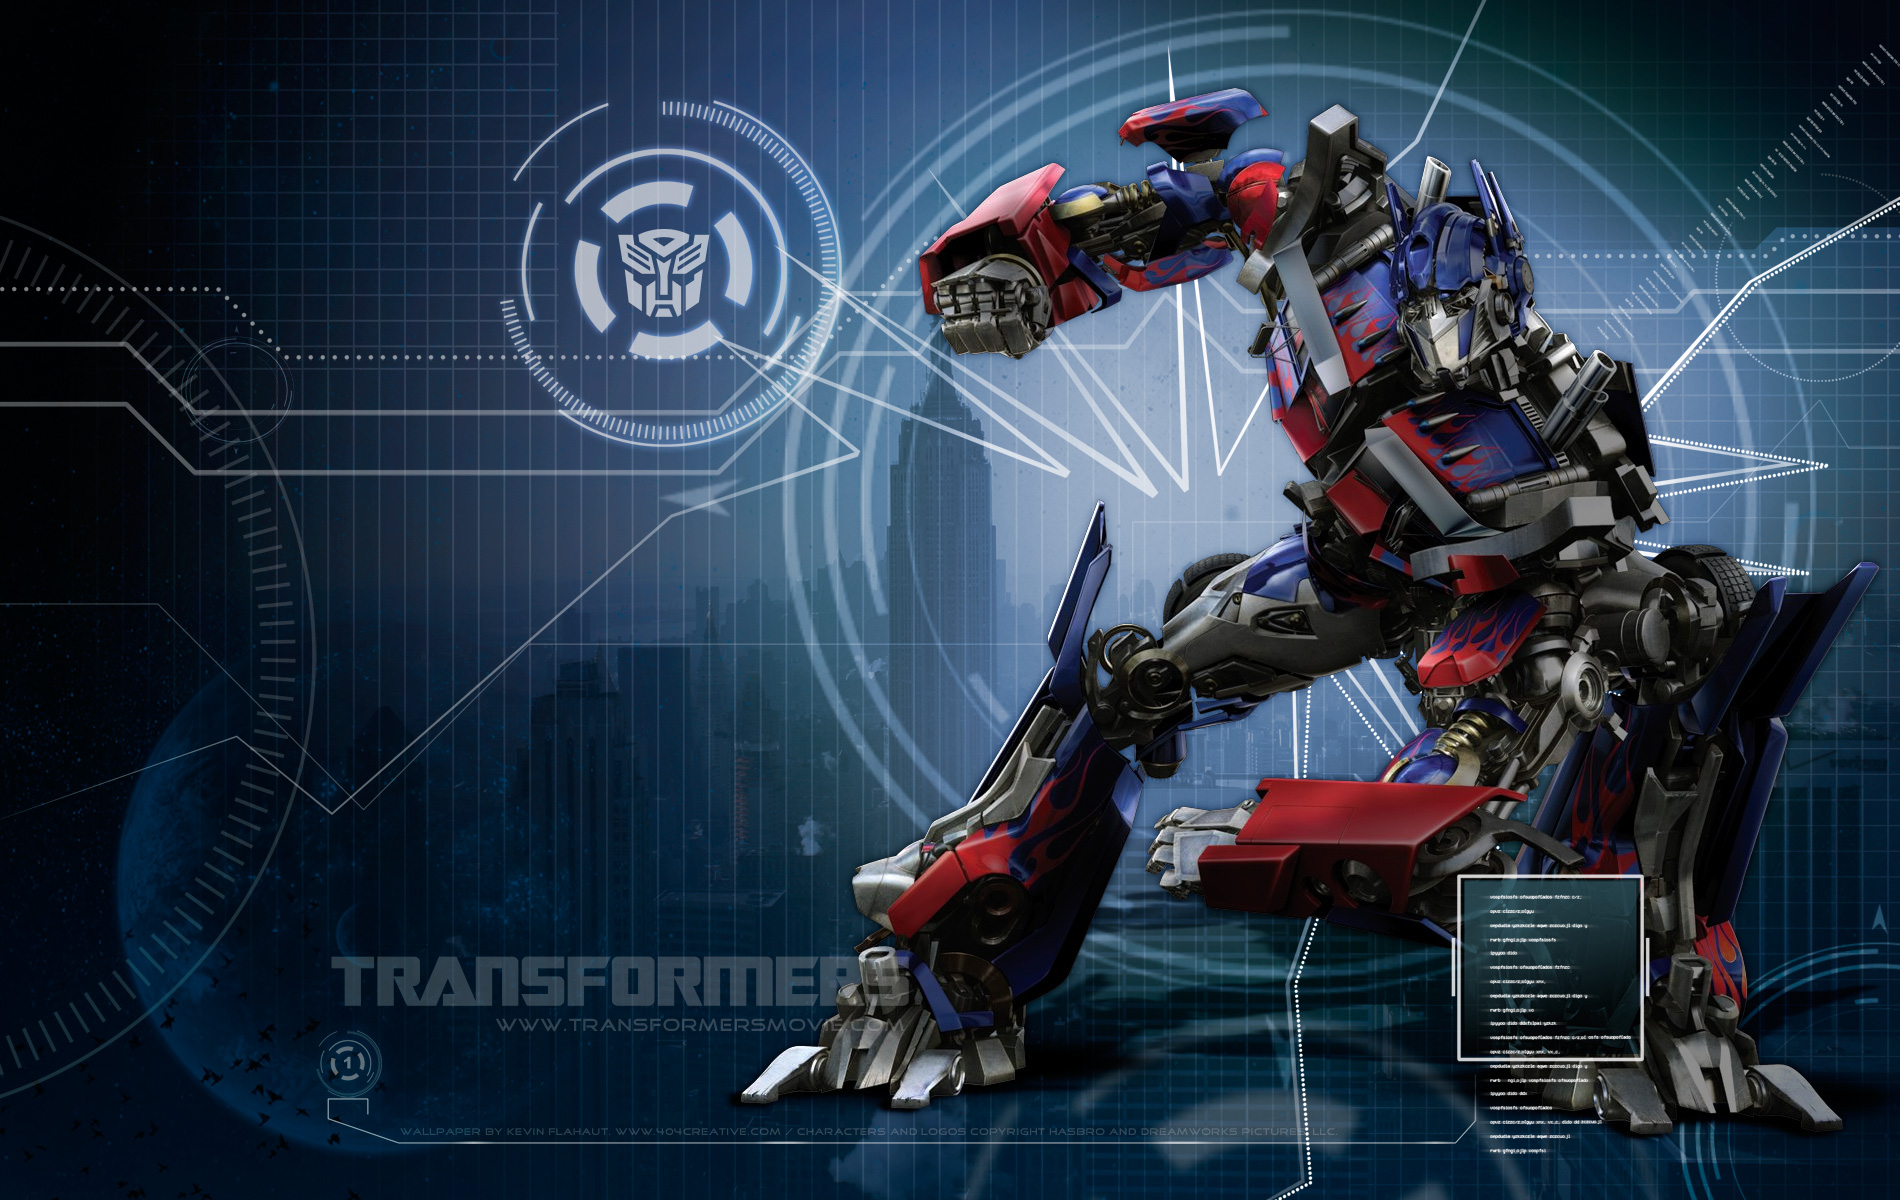 Transformers transformers photo 78960 fanpop - Transformers desktop backgrounds ...